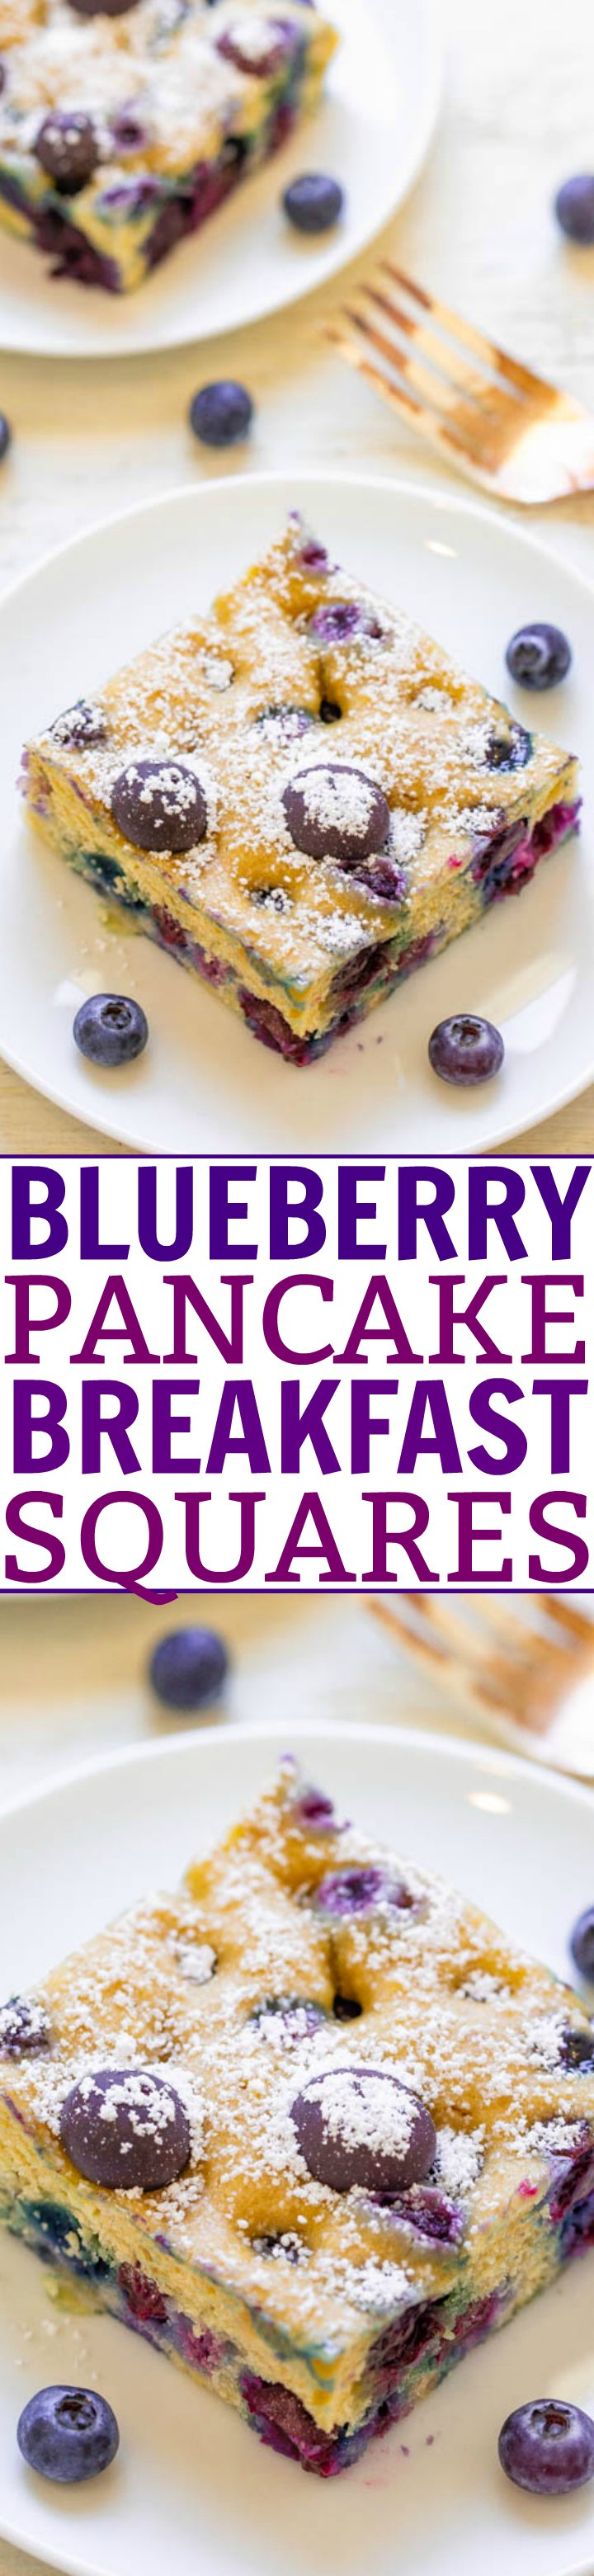 Blueberry Baked Pancakes — Craving pancakes but not the work of standing at the stove flipping them? Make these EASY oven baked pancakes with only THREE ingredients!! Perfect for weekend brunch or as a make-ahead weekday breakfast!!